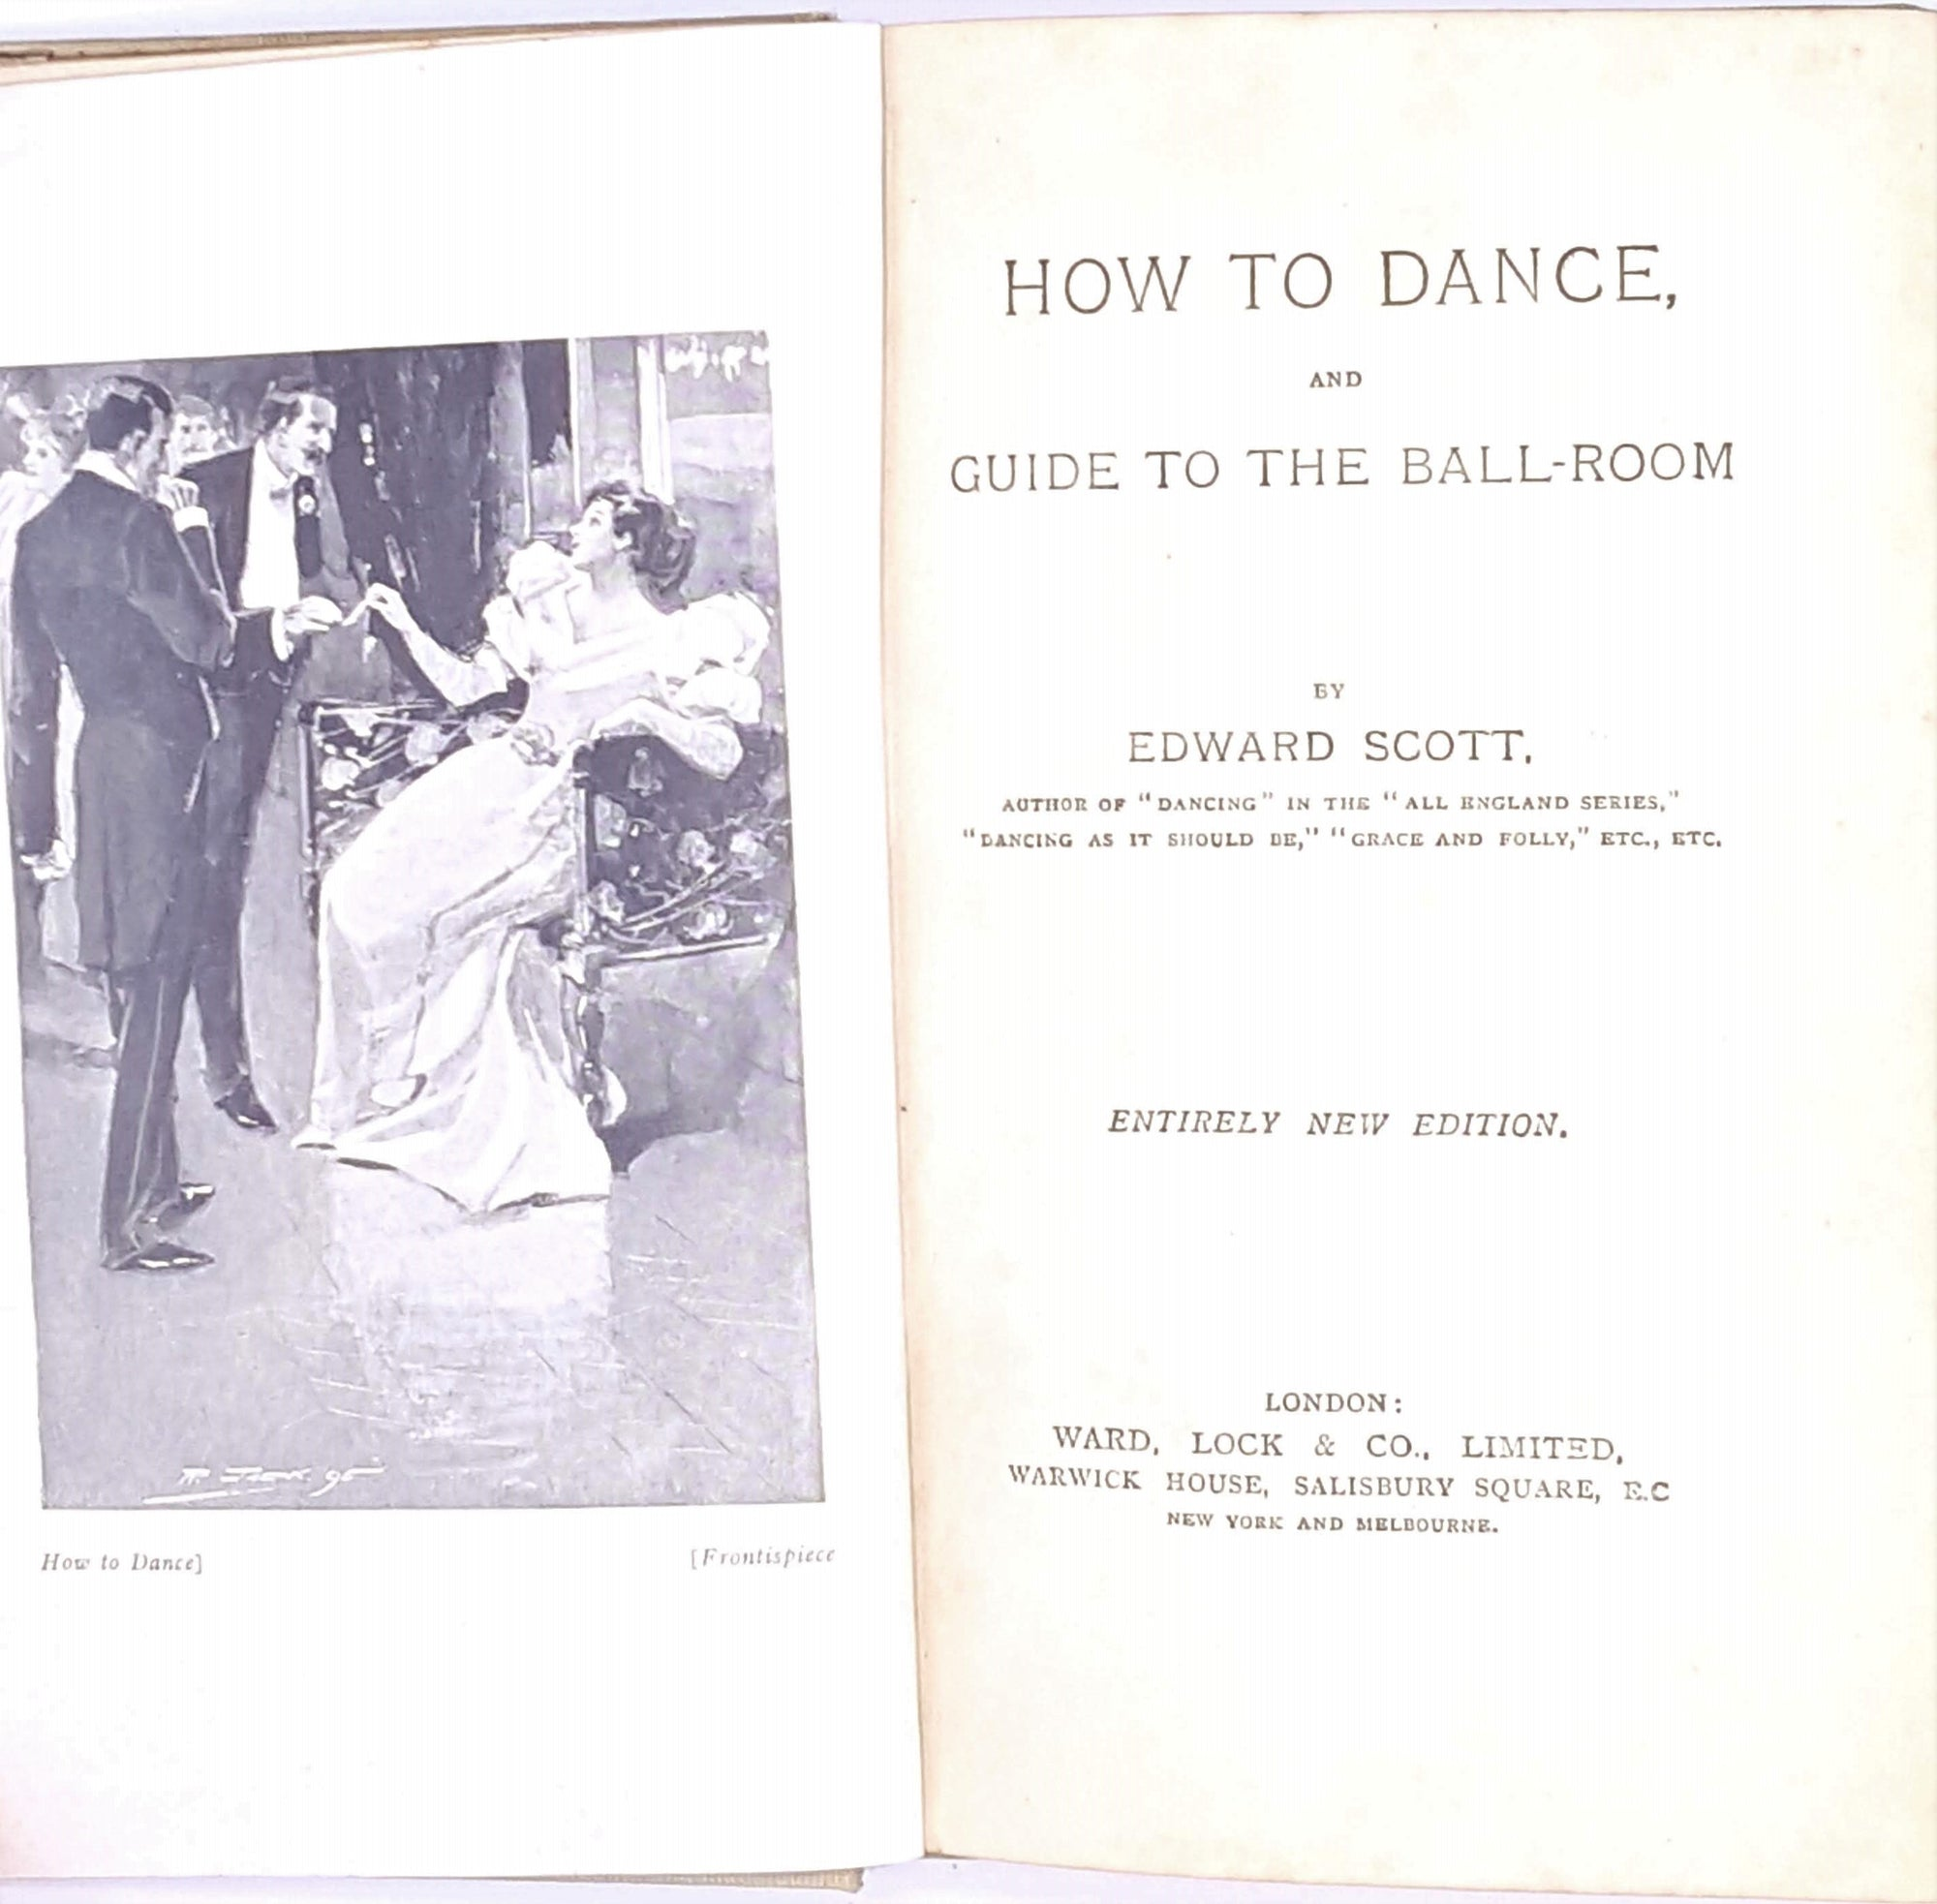 books-dancing-decorative-vintage-vintage-classic-antique-country-house-library-christmas-ball-room-how-to-dance-old-thrift-patterned-etiquette-